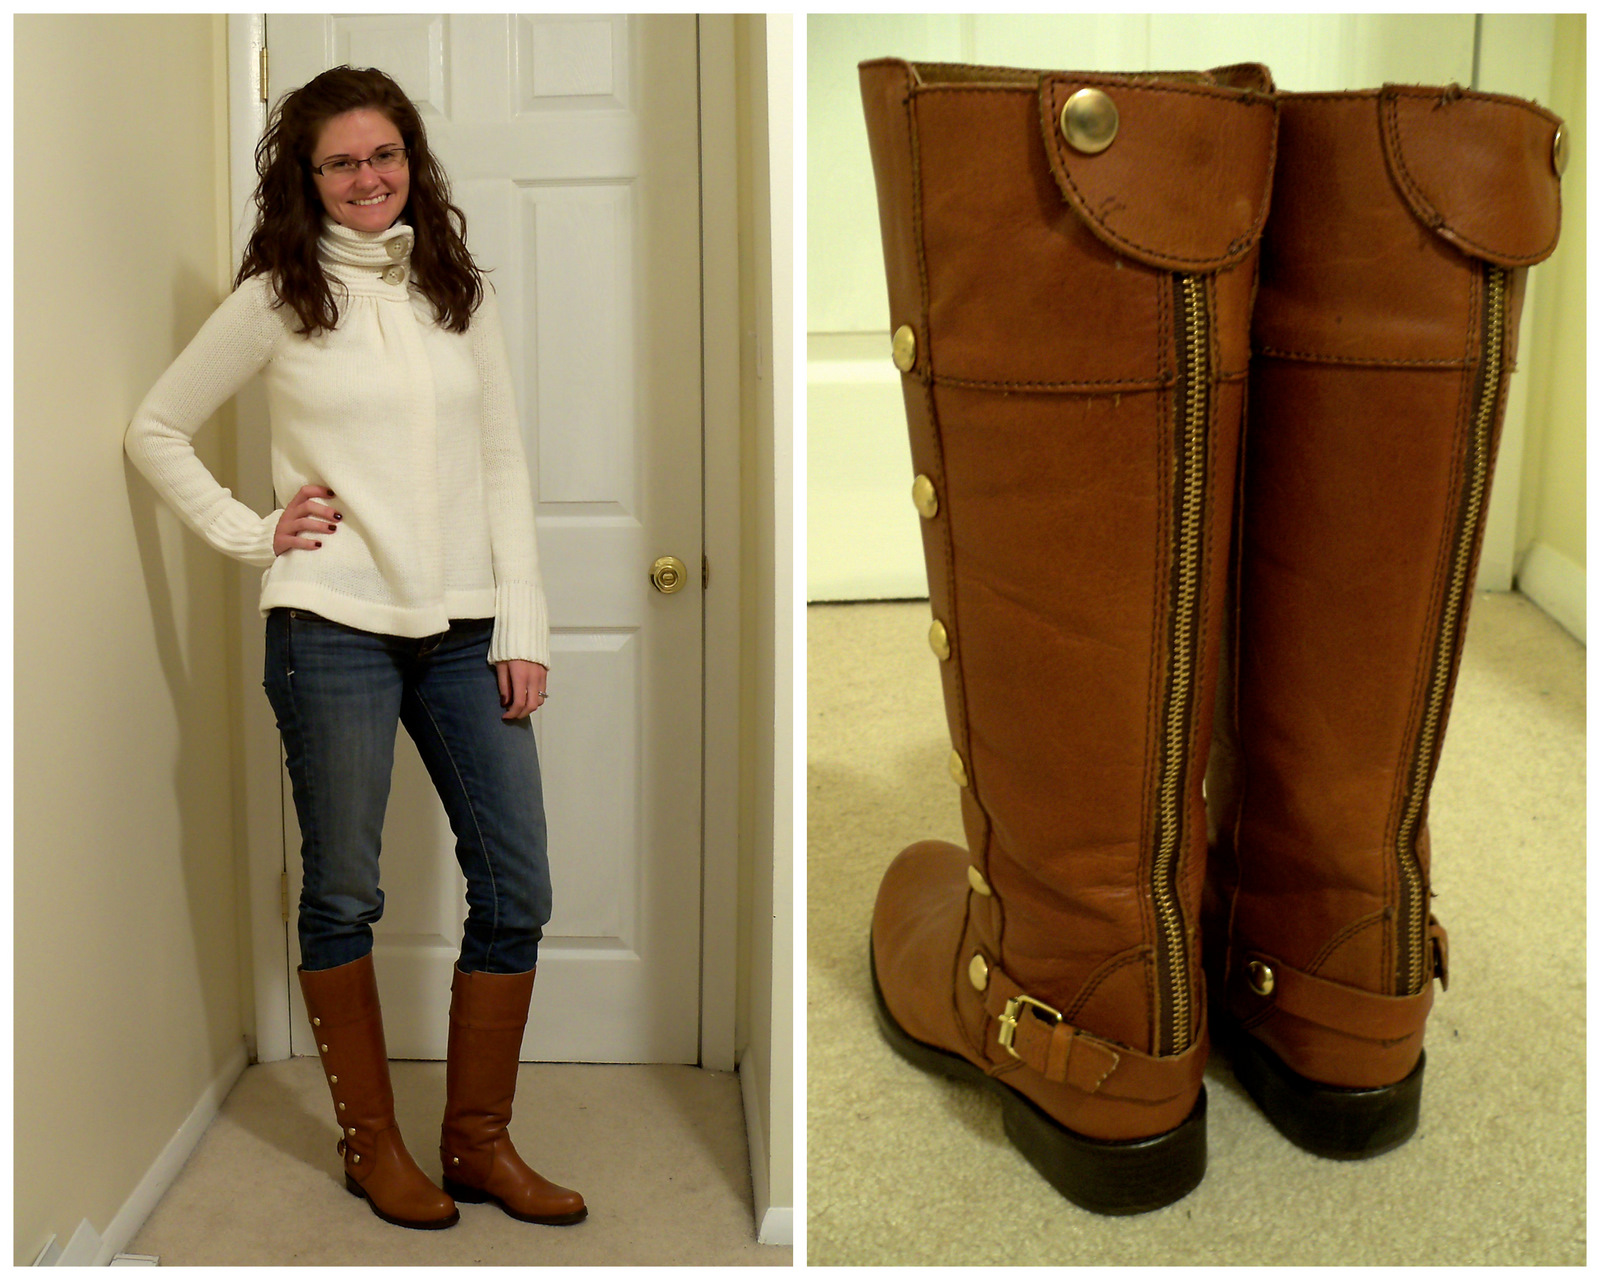 Riding Boots for Women | Dress images